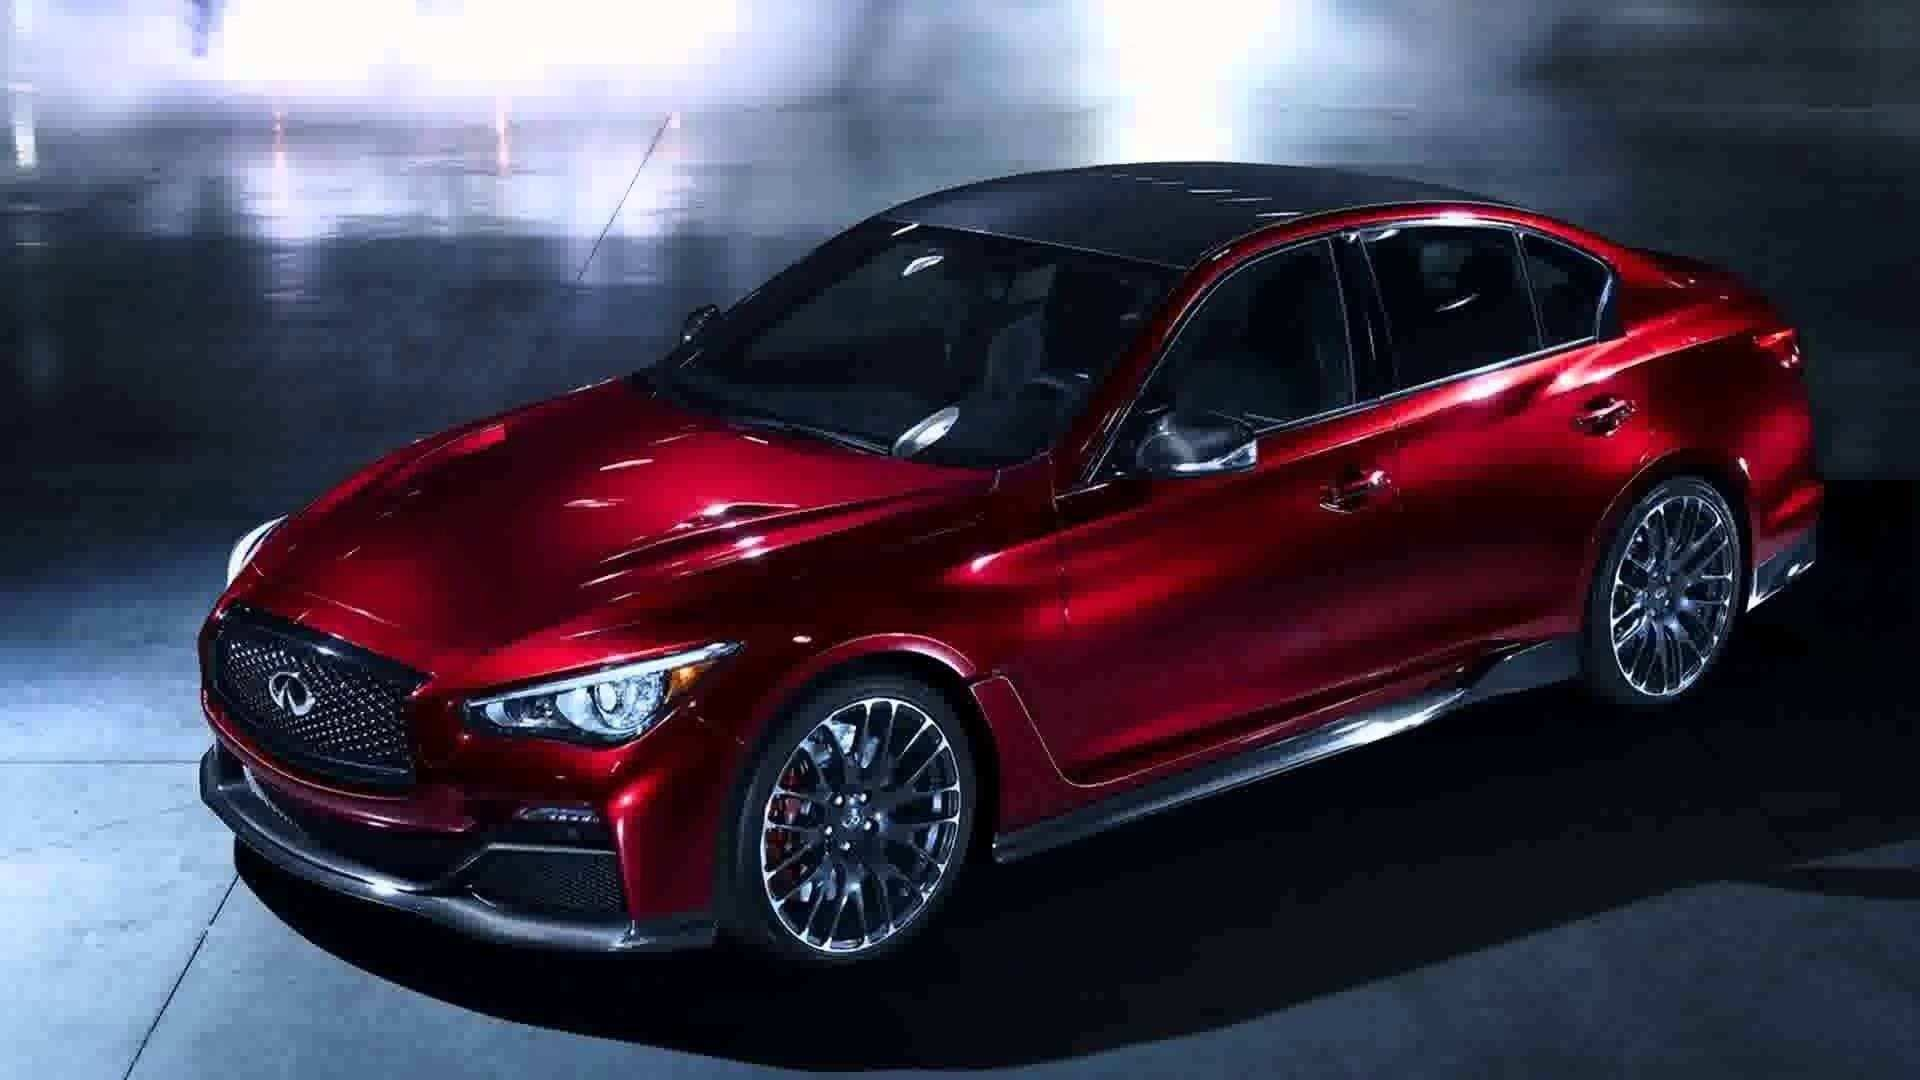 84 All New 2020 Infiniti Q60 Coupe Ipl Redesign